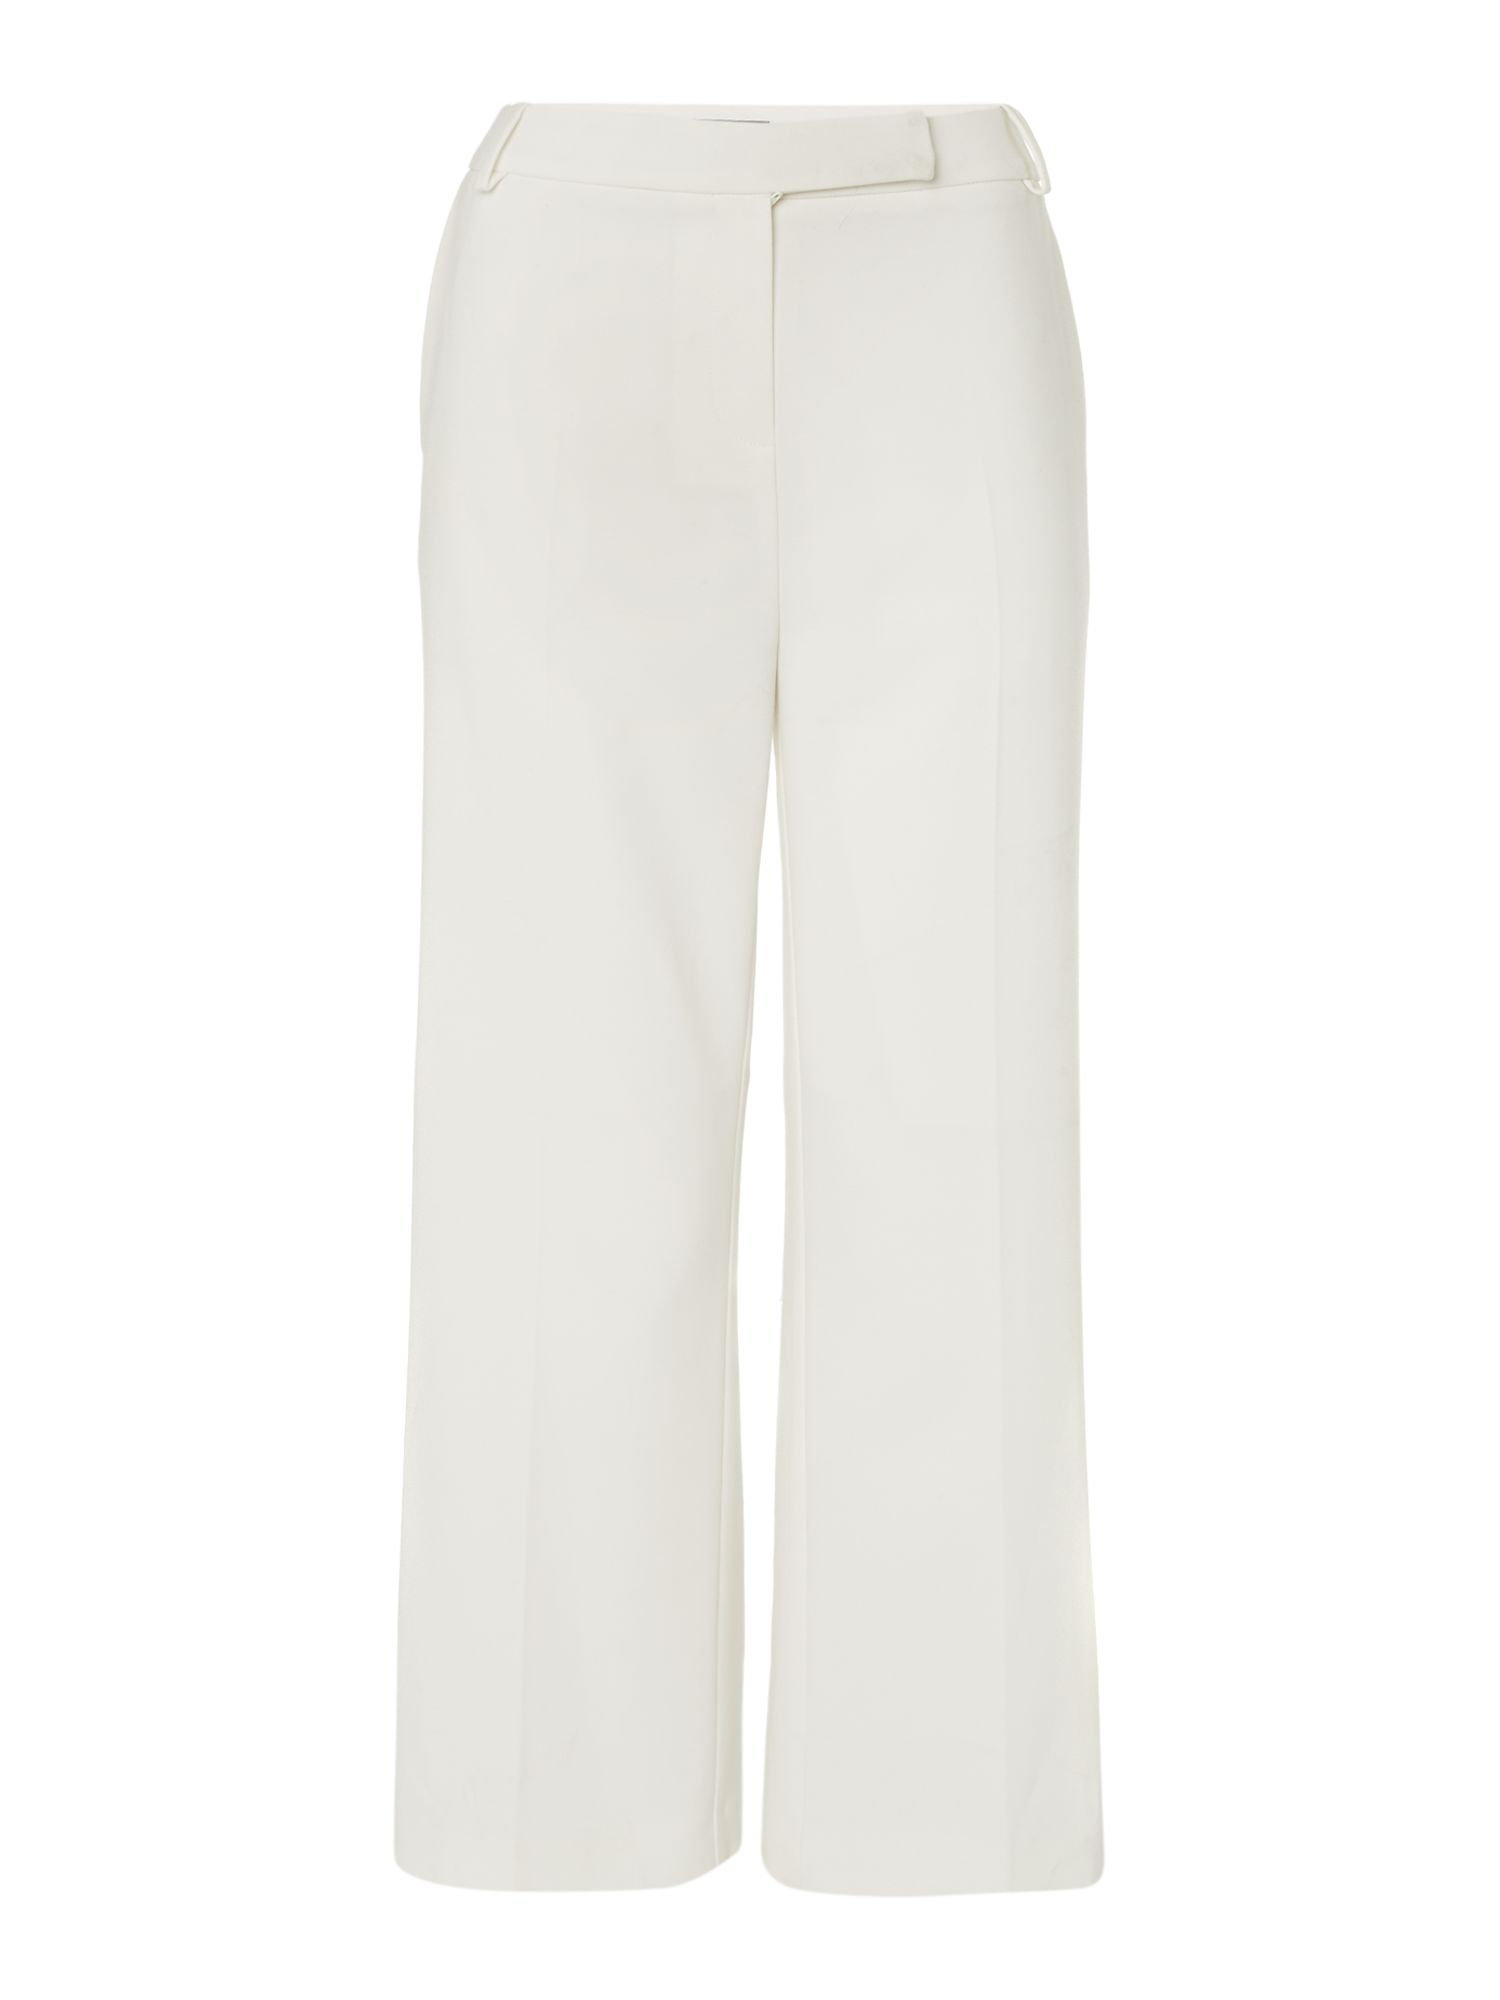 Pied a Terre Pied a Terre 3/4 Flare Trousers, Ivory